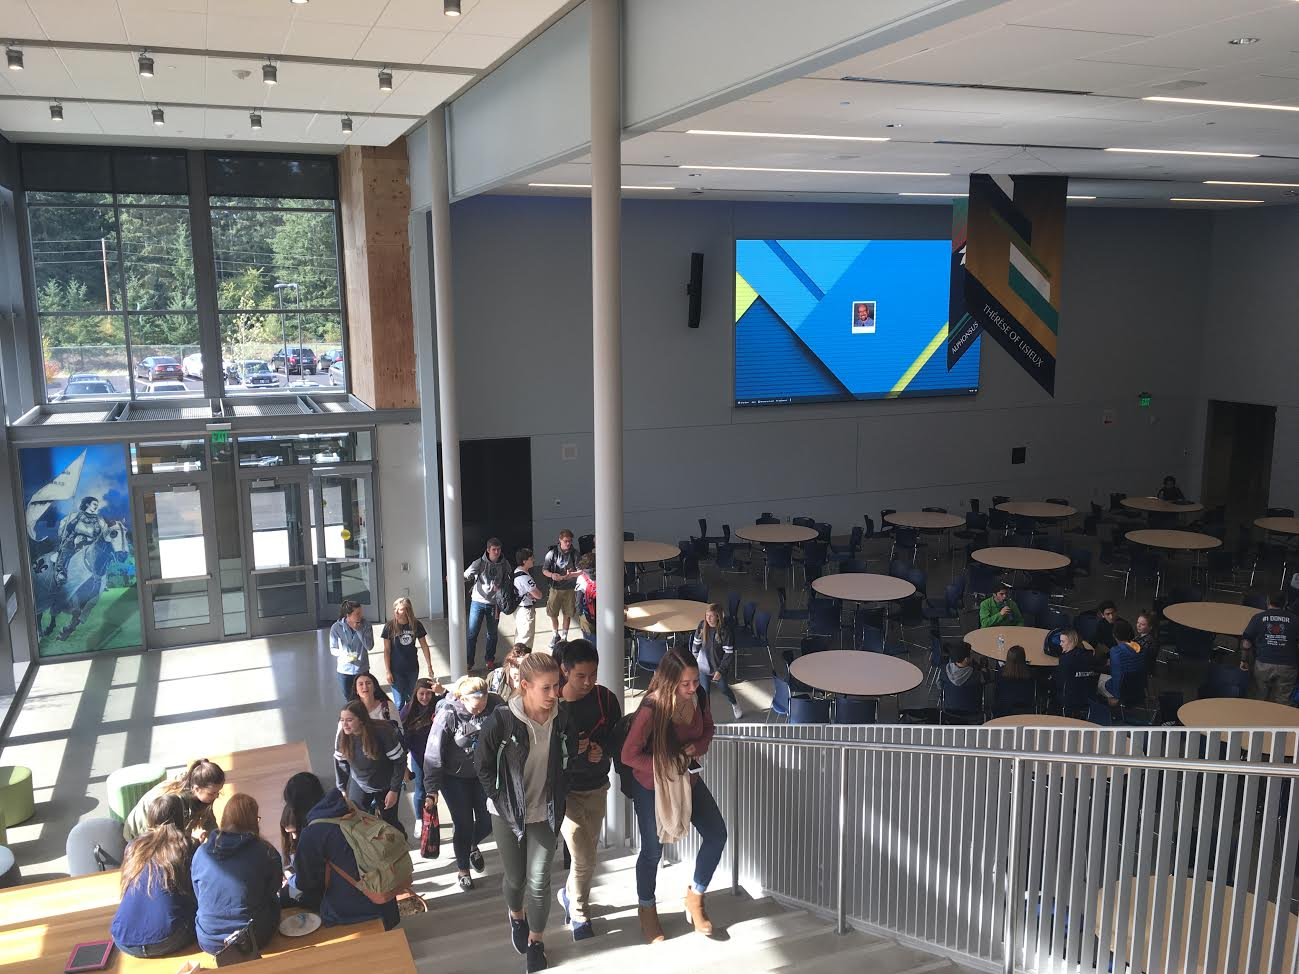 Students enjoy the new features of the Connelly Campus Center. Photo by Cristina Shaffer